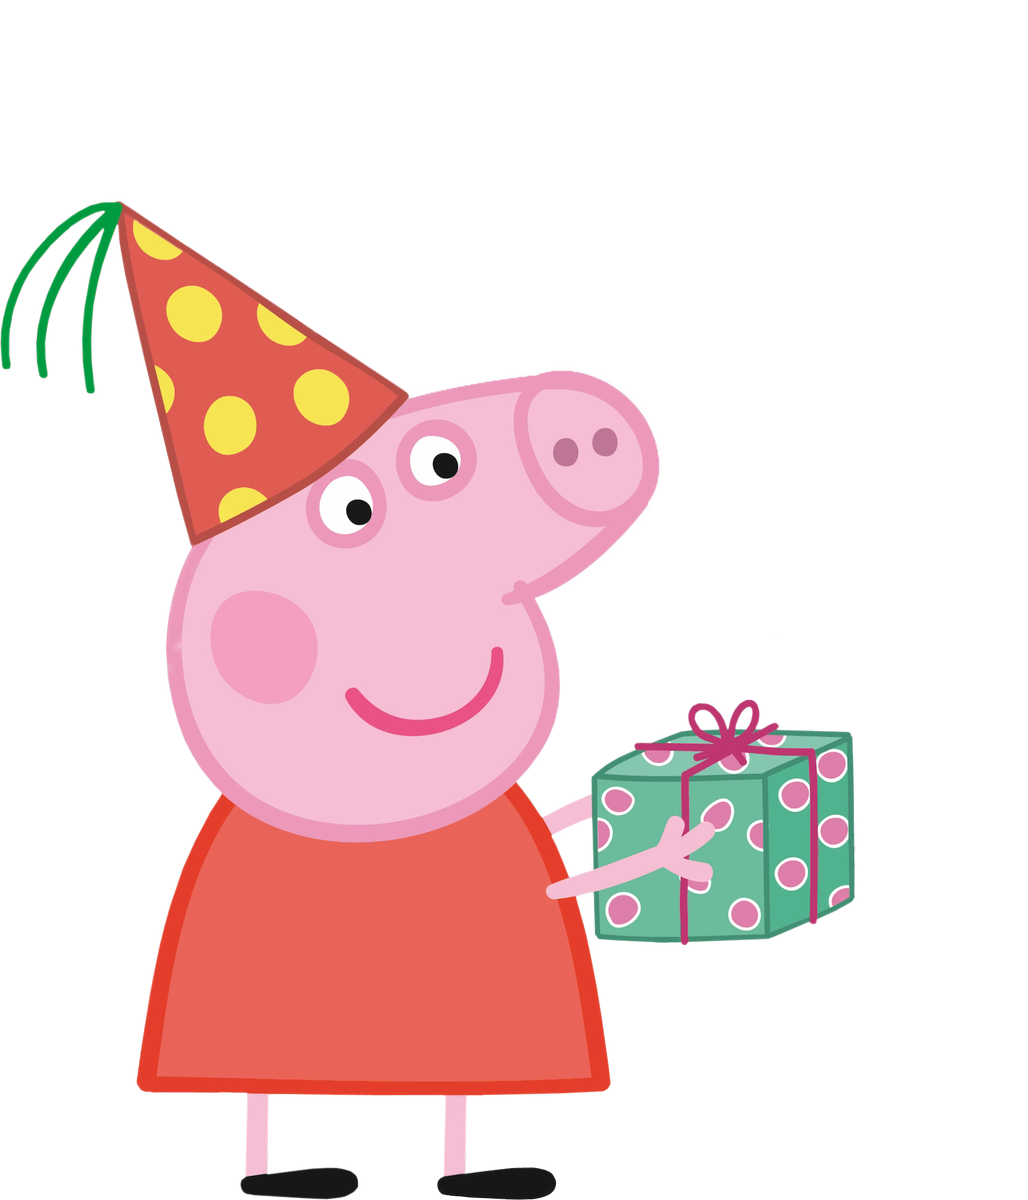 Peppa pig birthday png. Images in collection page